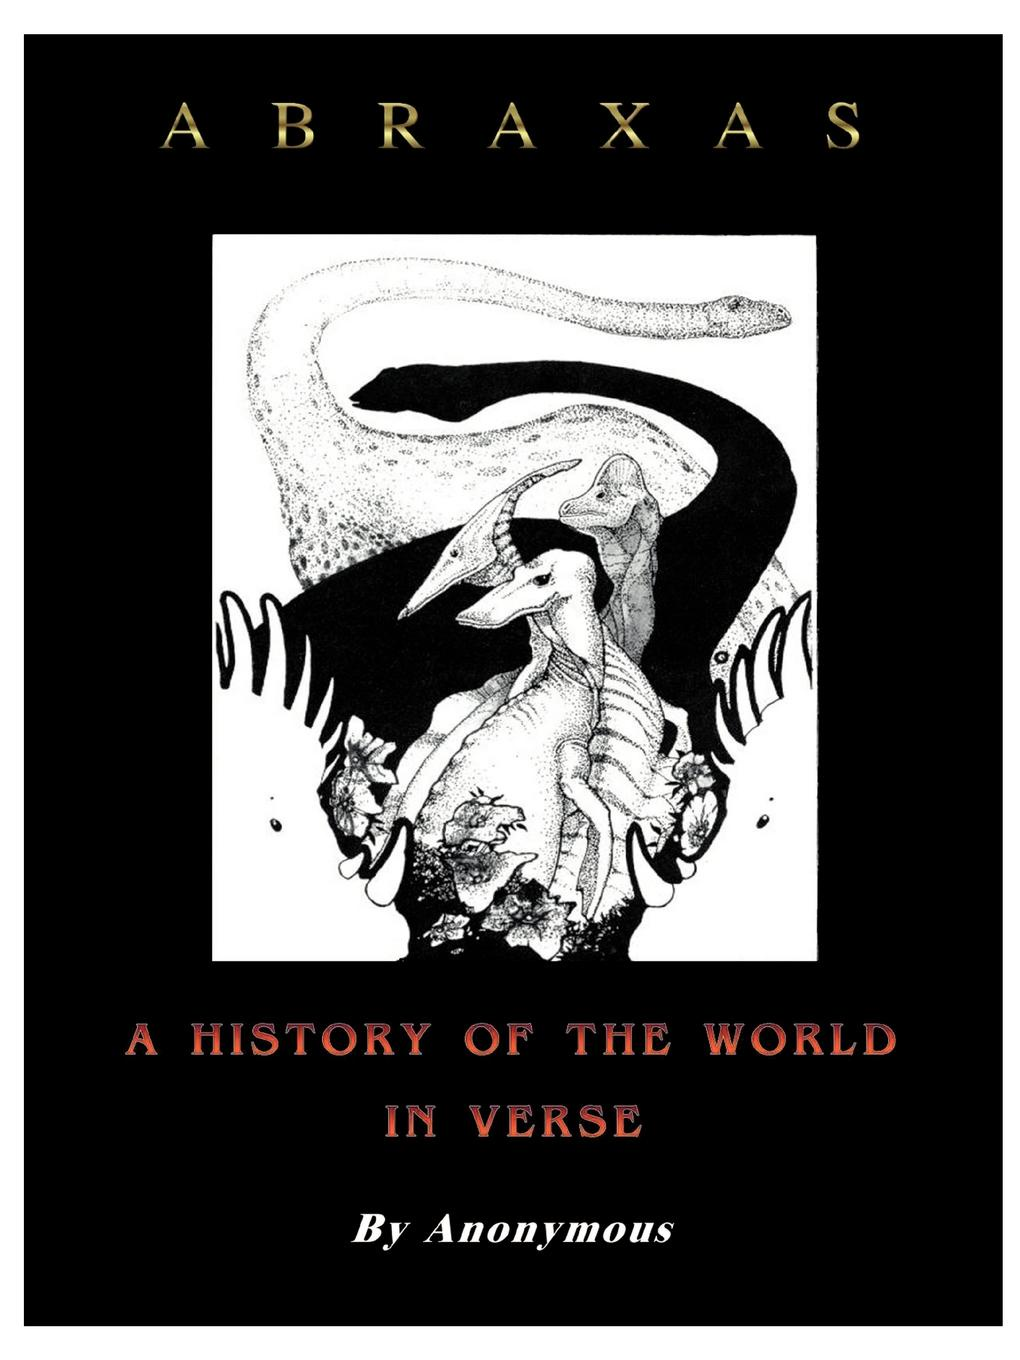 M. l'abbé Trochon Abraxas. A History of the World in Verse